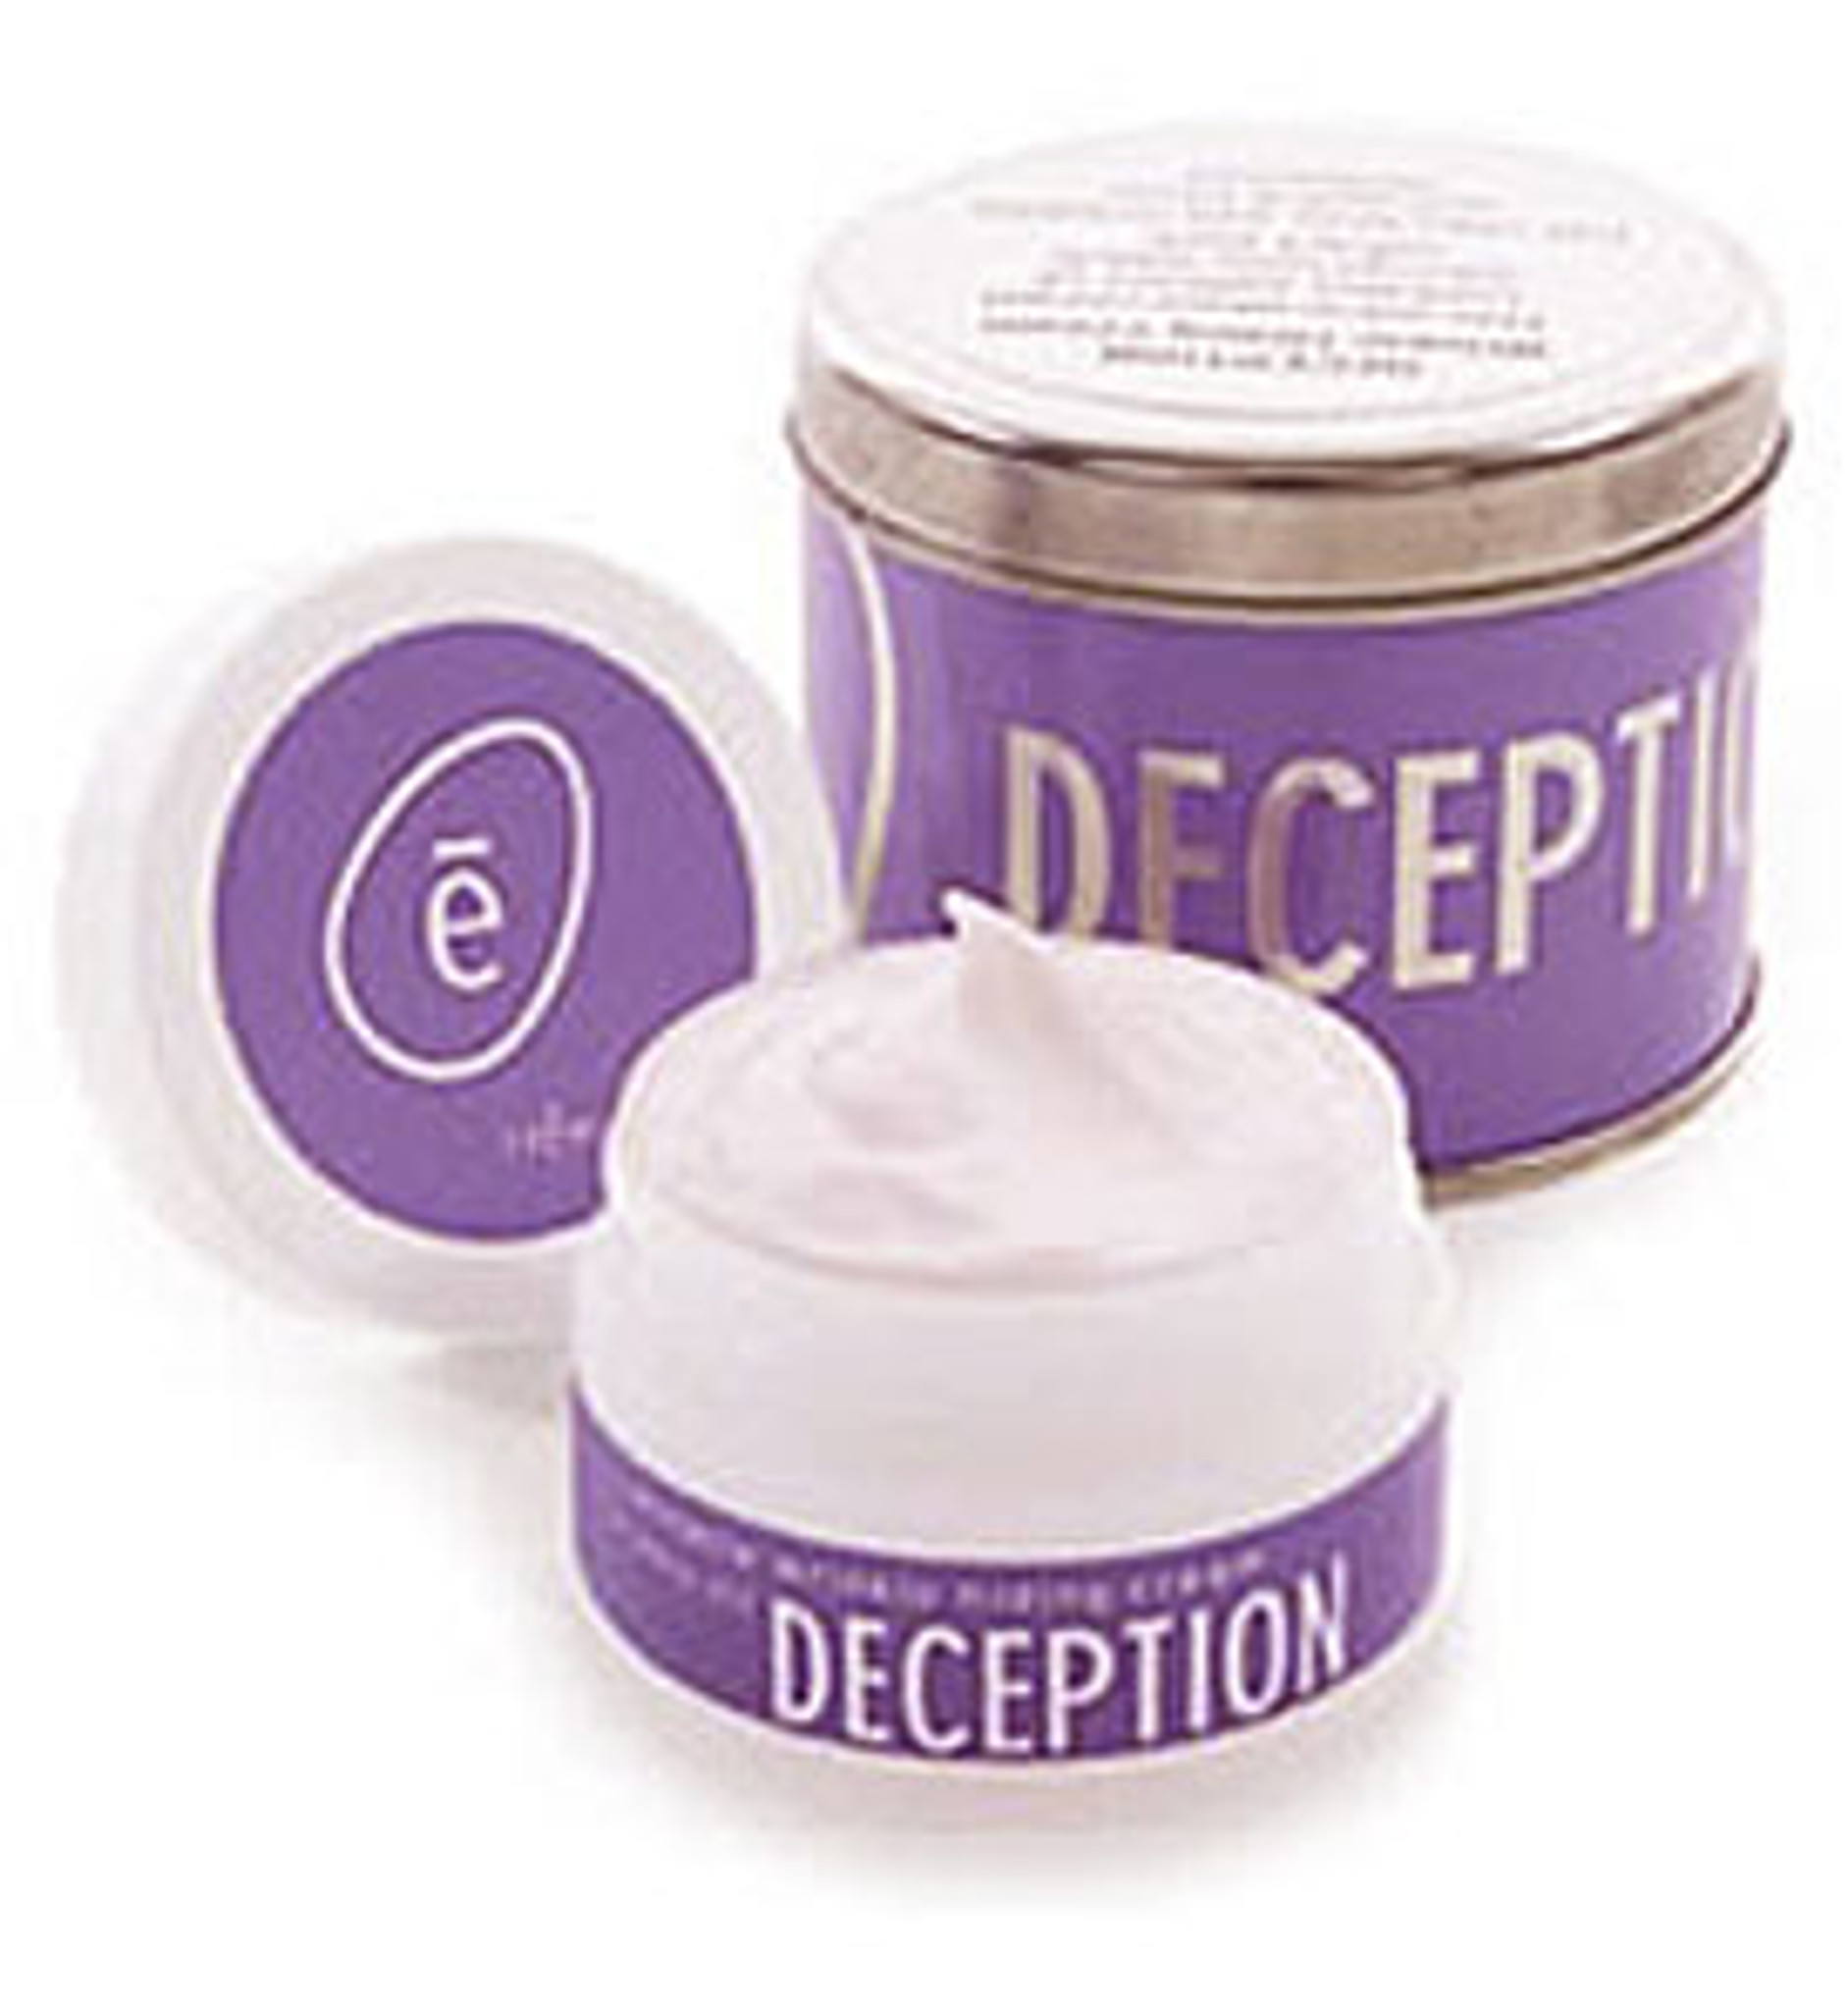 Deception - Best Anti Wrinkle Cream 3 month Supply  Made in USA for over 23  years!